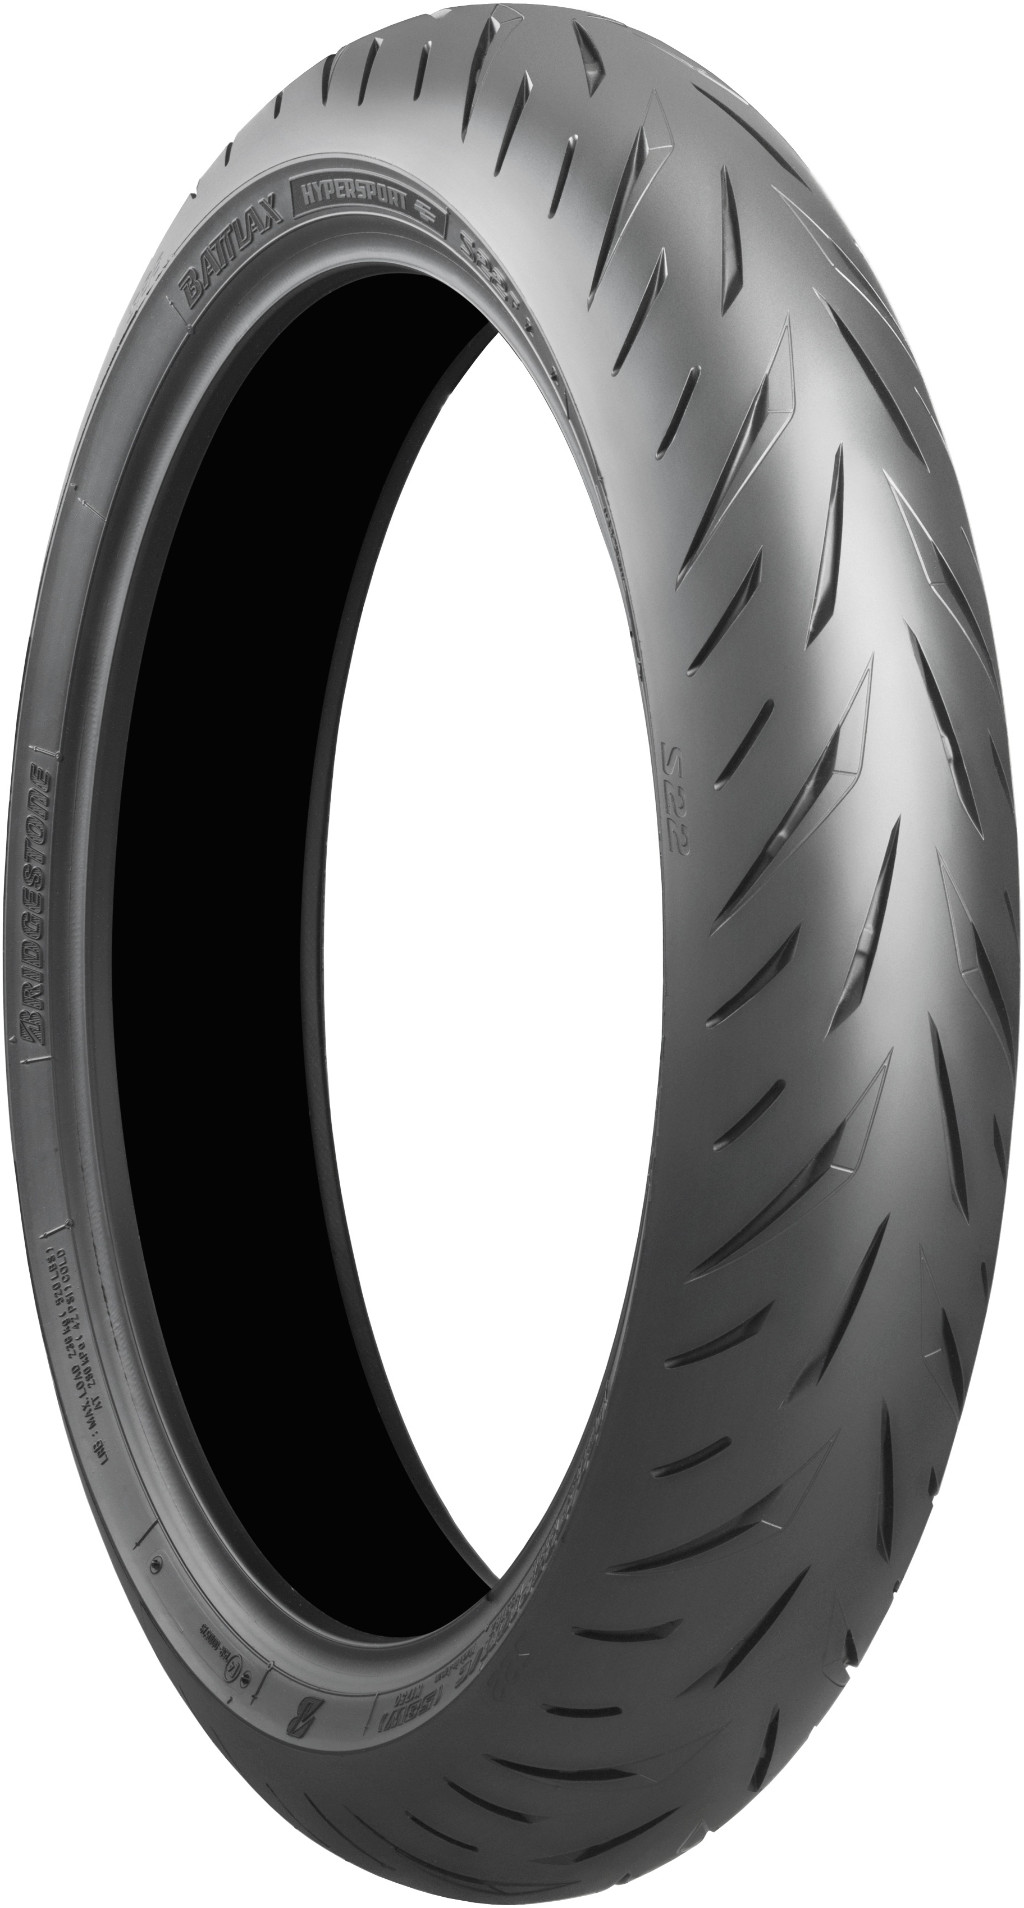 BRIDGESTONE BATTLAX гиперкаром С22 [120/70zr17m/с(58в)] BATTLAX гипер спорти